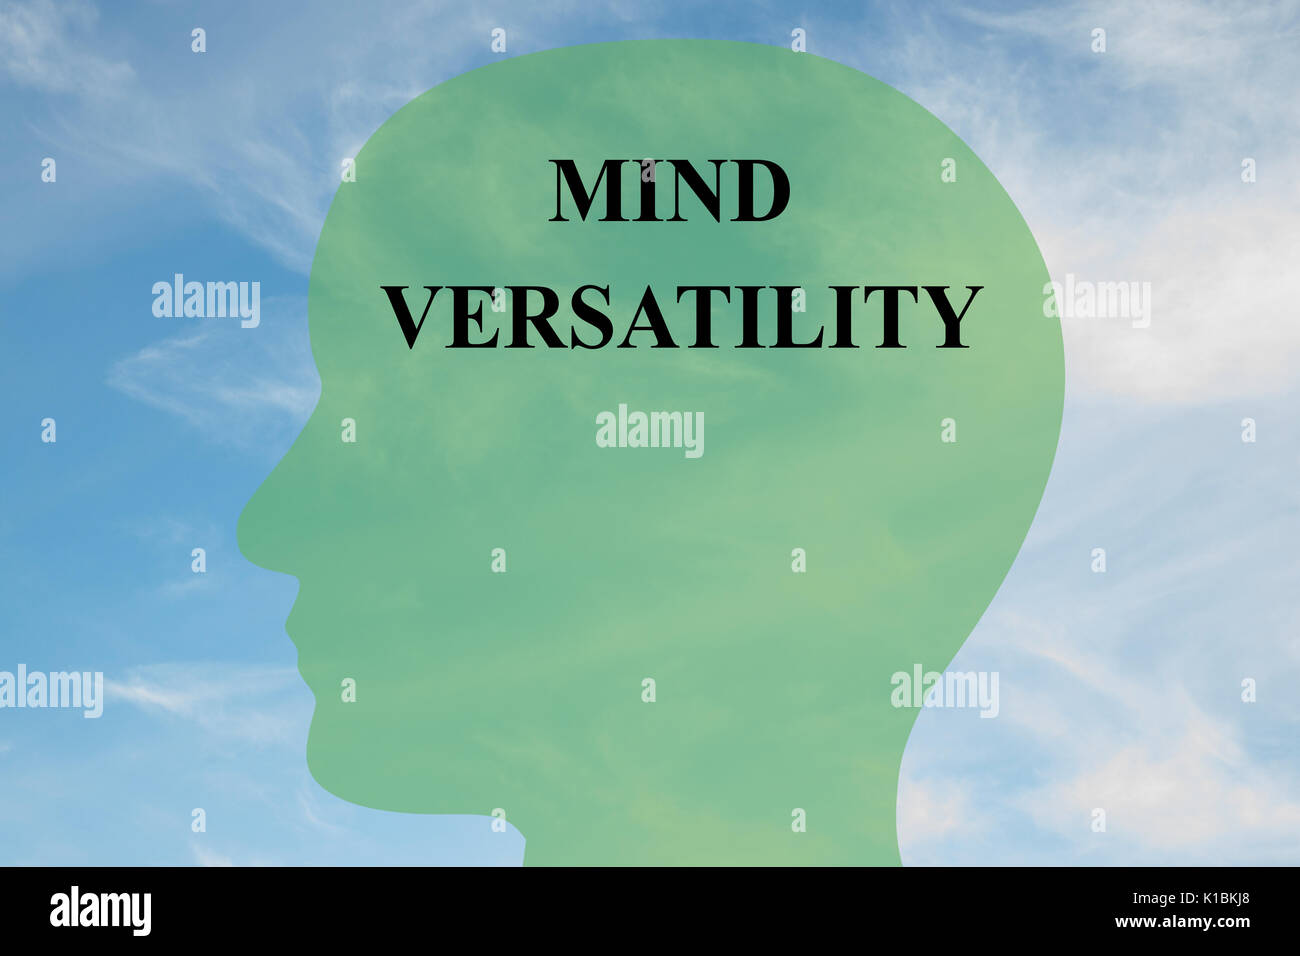 Render illustration of Mind Versatility title on head silhouette, with cloudy sky as a background - Stock Image